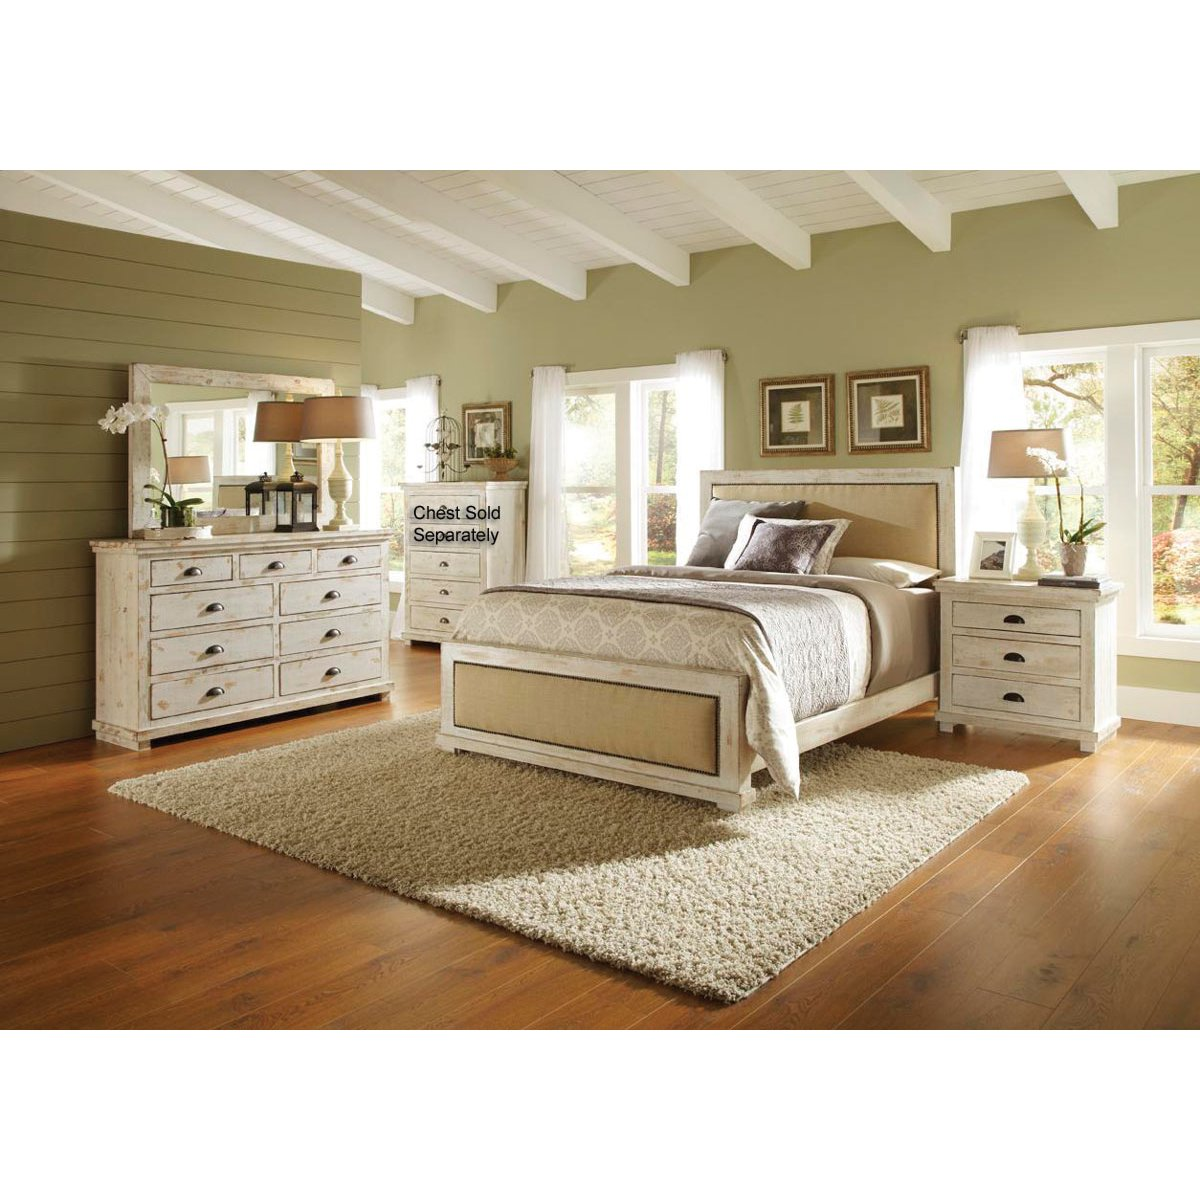 large cal risers with htm w instamatic pc leg kit wr extender frames bed king california frame store